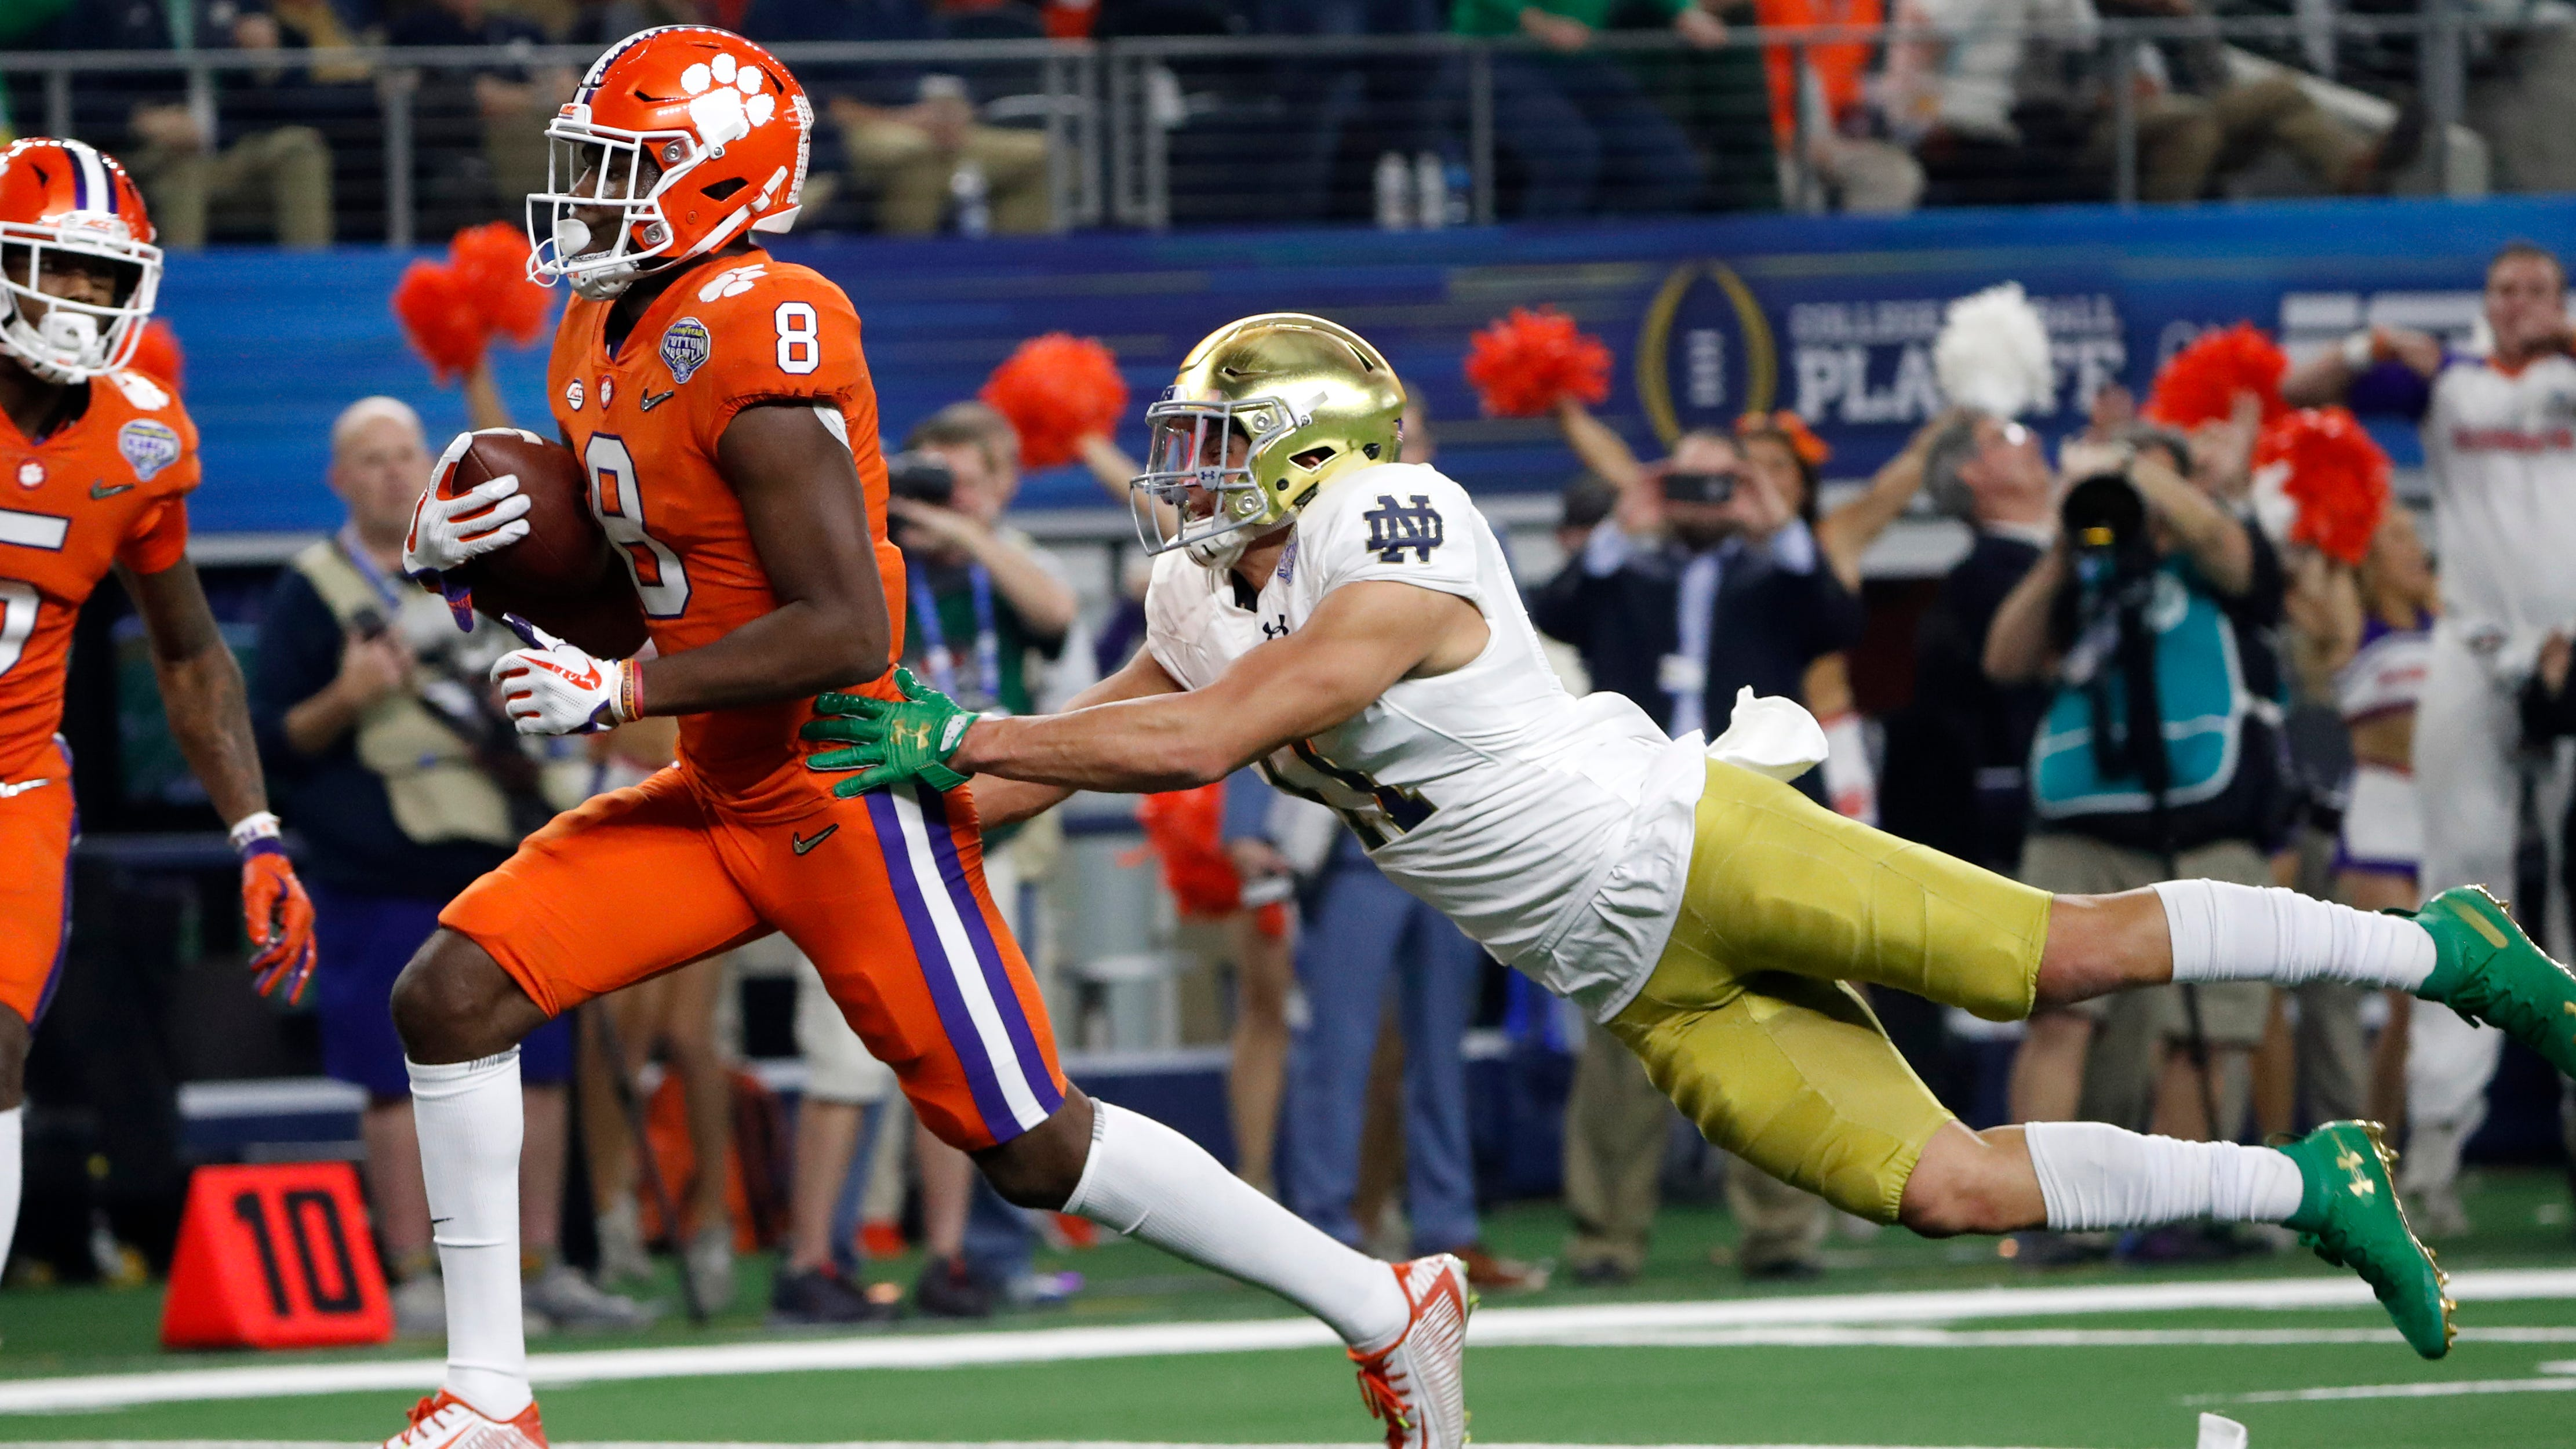 Notre Dame S 30 3 Playoff Loss To Clemson Looked Familiar Didn T It